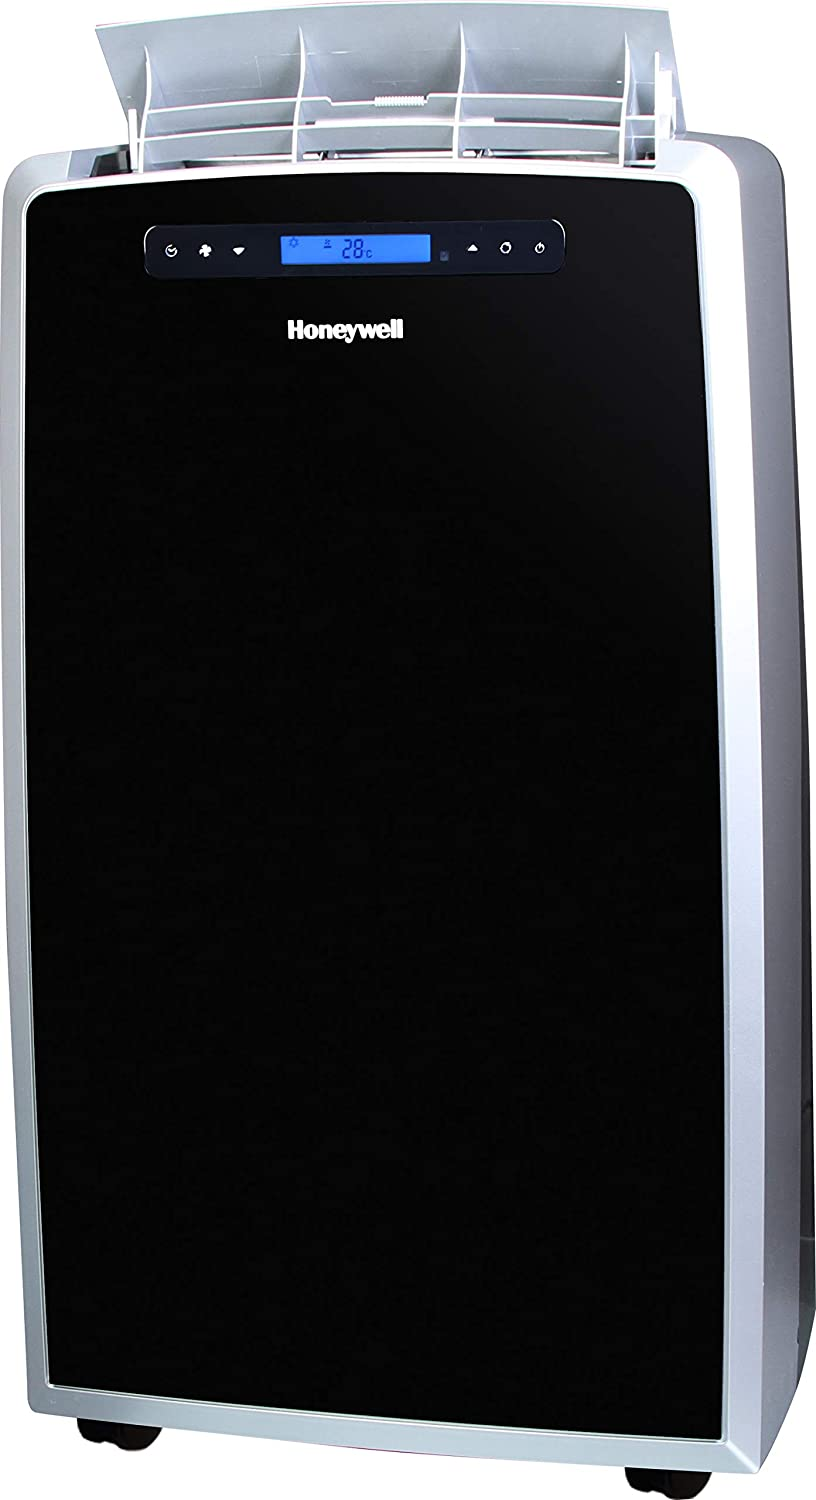 Honeywell Black/Silver MM14CCS Portable Air Conditioner with Fan & Dehumidifier with Thermal Overload Protection, 14000 BTU